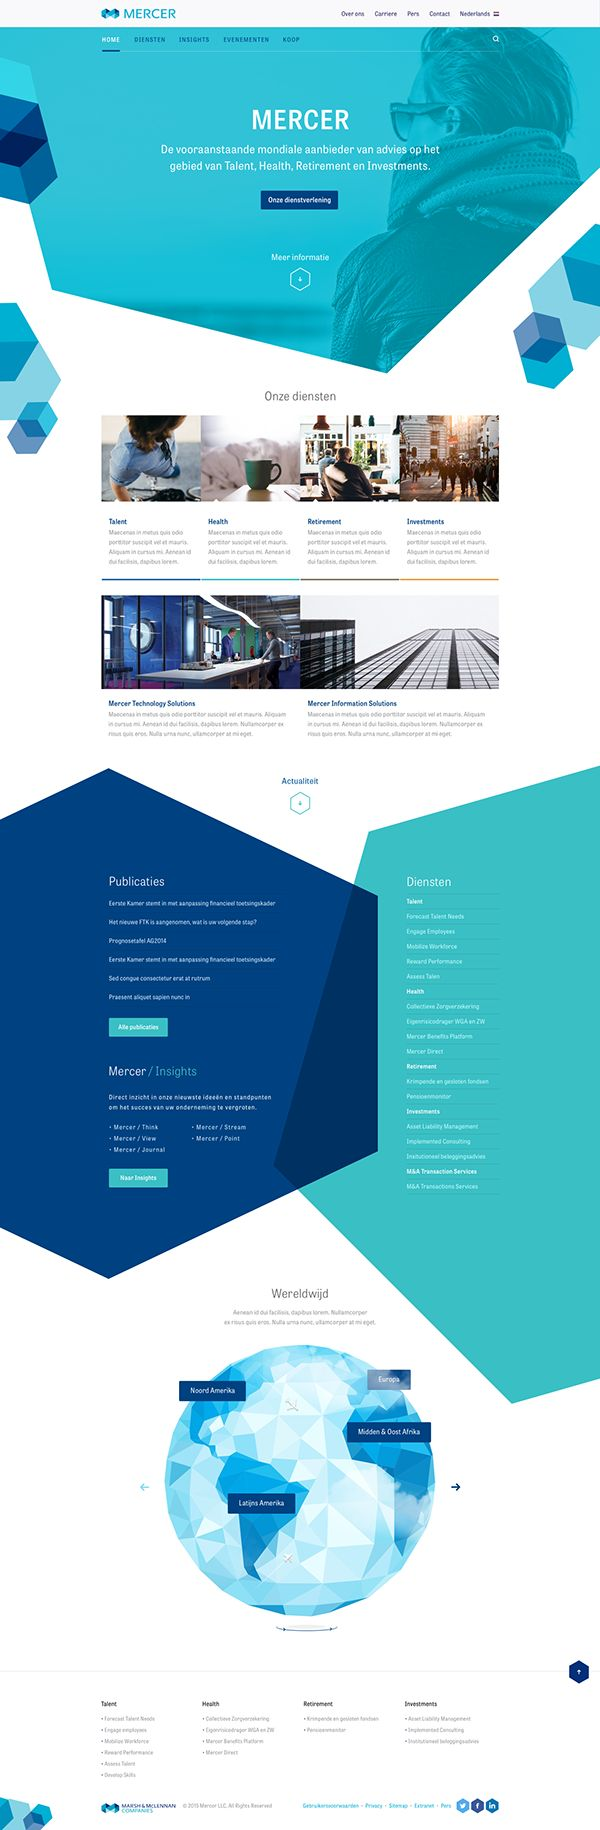 Mercer on Web Design Served